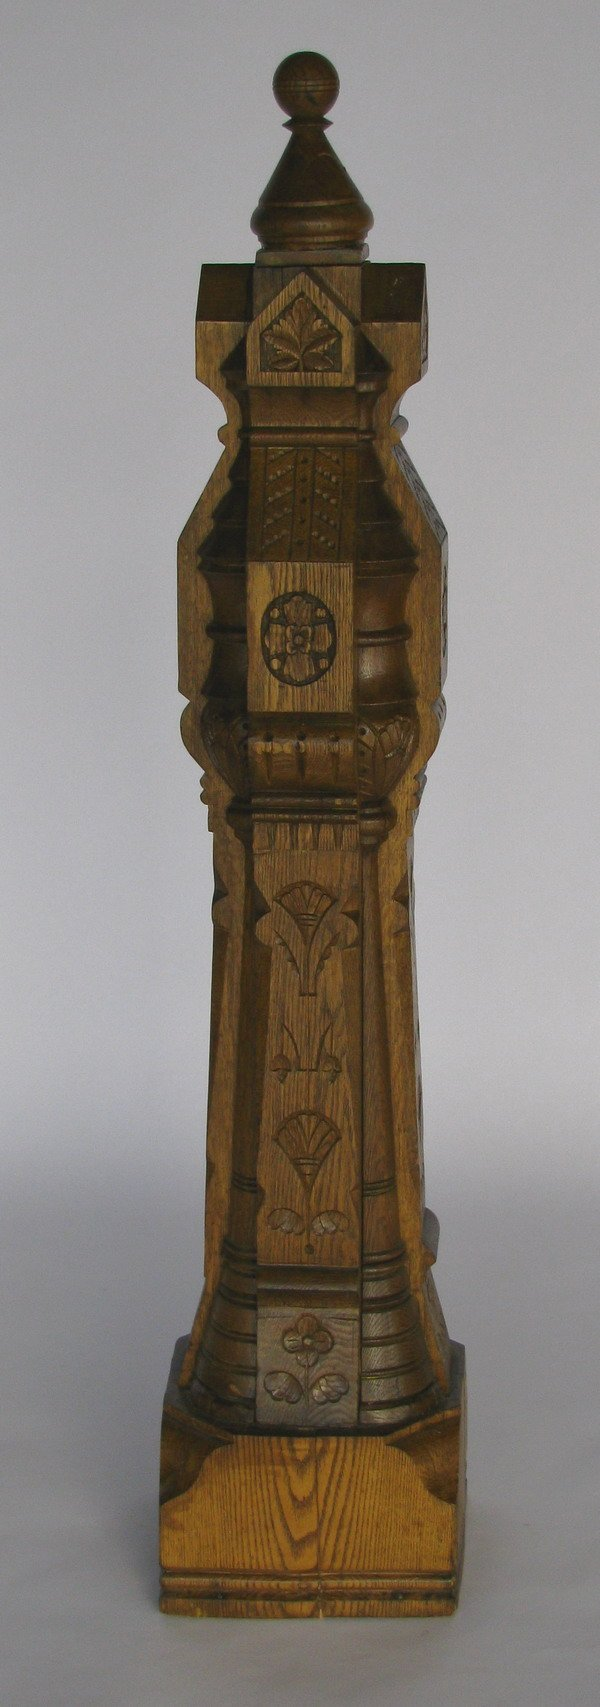 259: Carved oak newell post